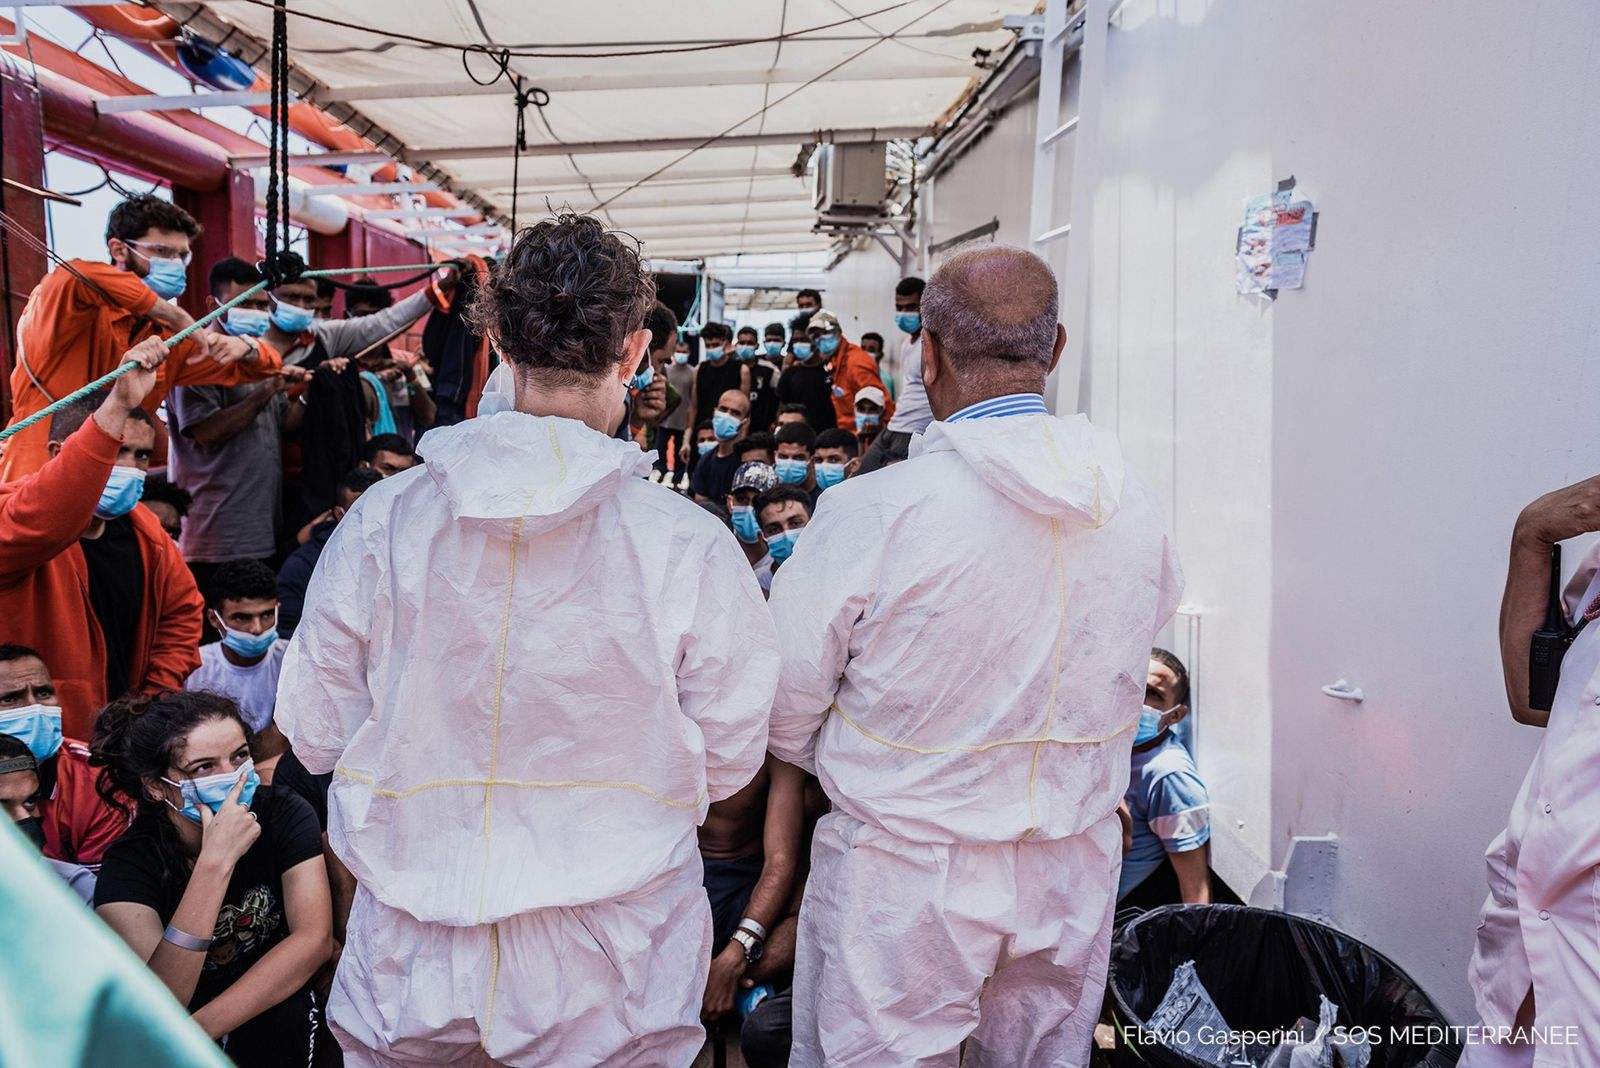 Migranti: team medico italiano lascia Ocean Viking, At Sea - 04 Jul 2020